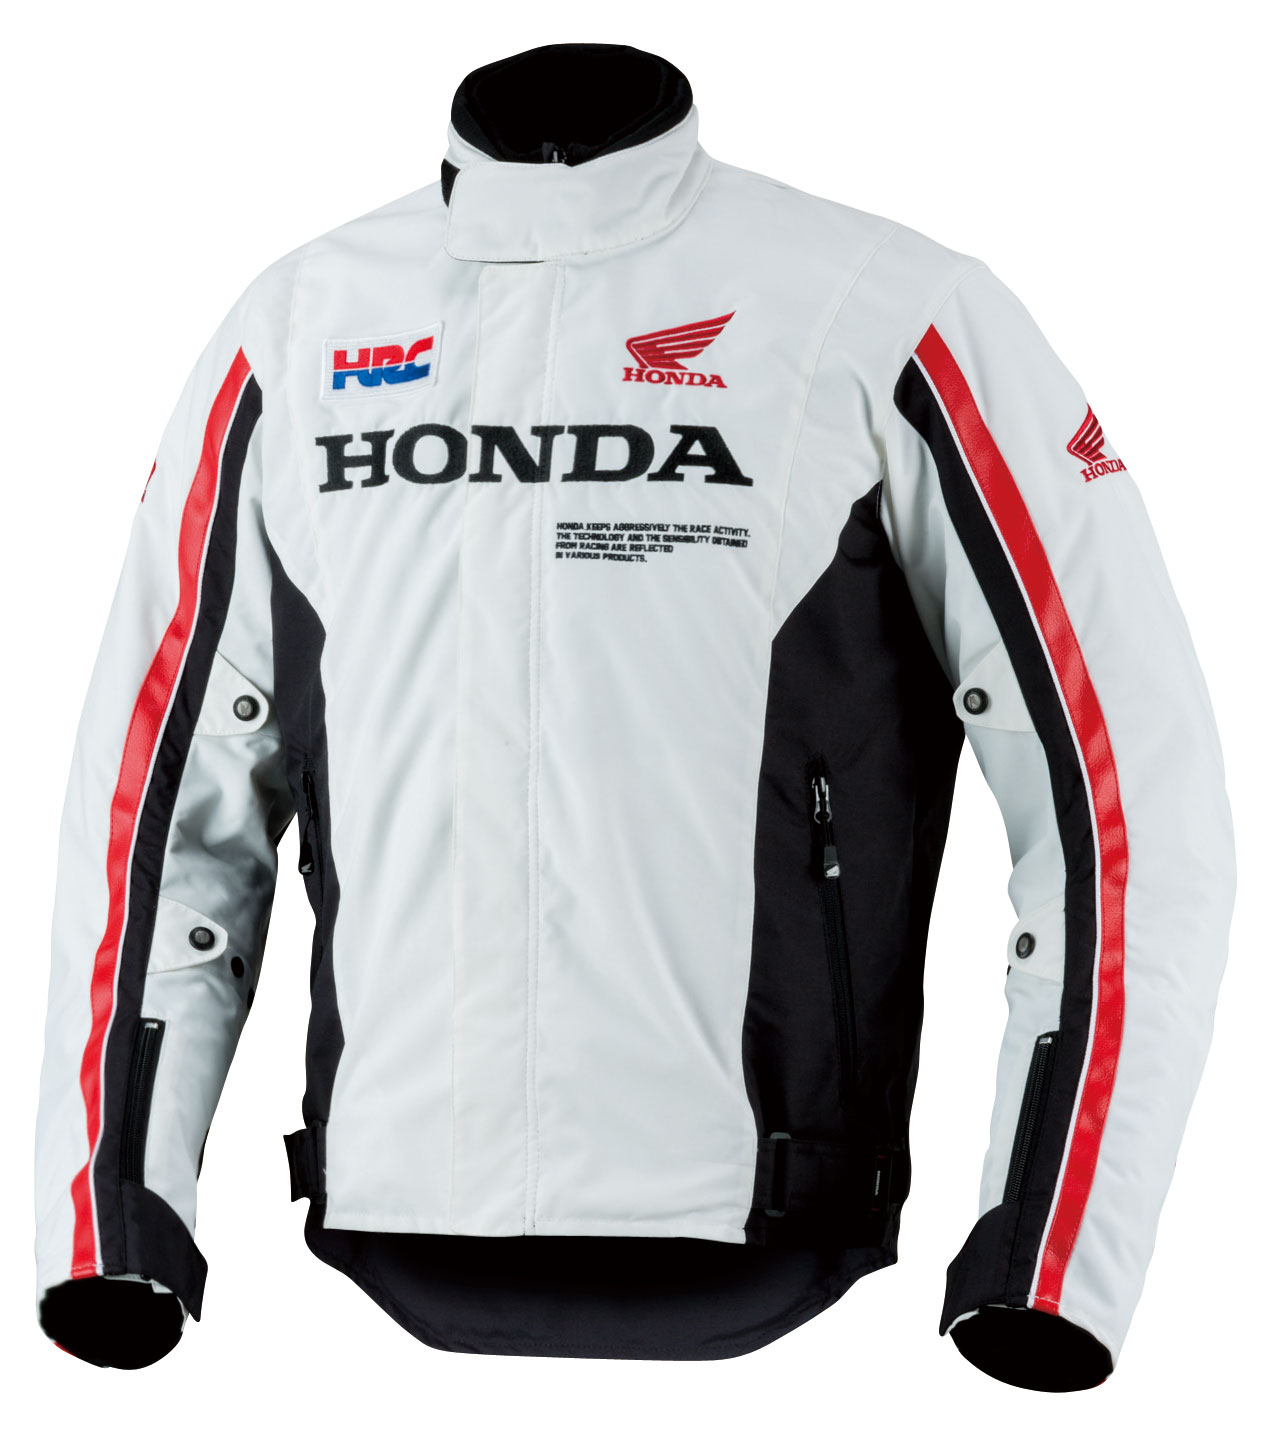 HONDA RIDING GEAR : [HRC] All Season Reitblouson [0SYTN-W3L-WS]